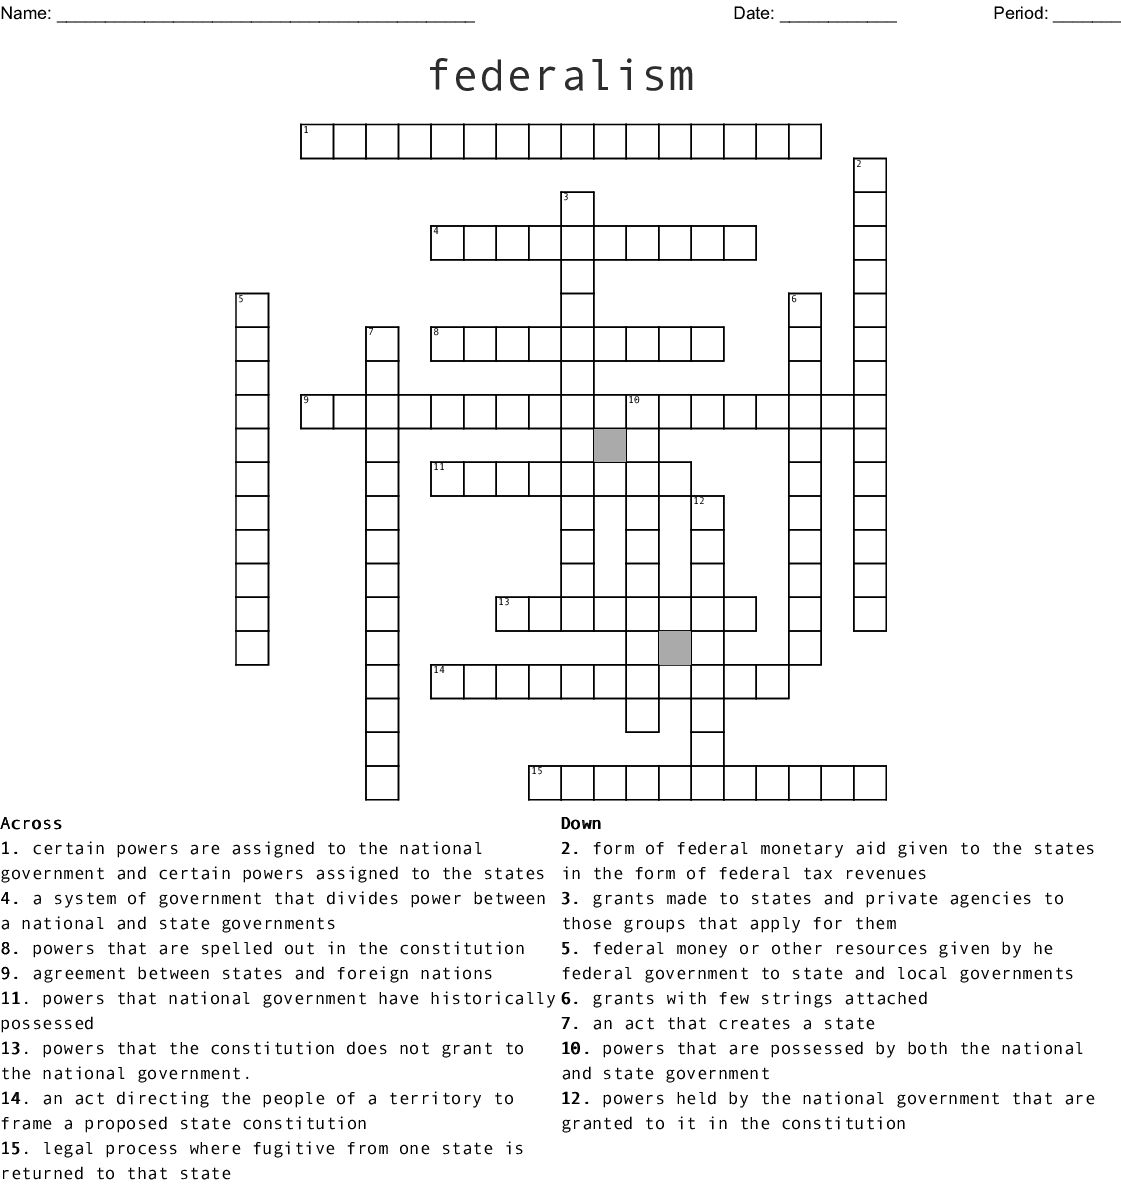 Federalism Crossword